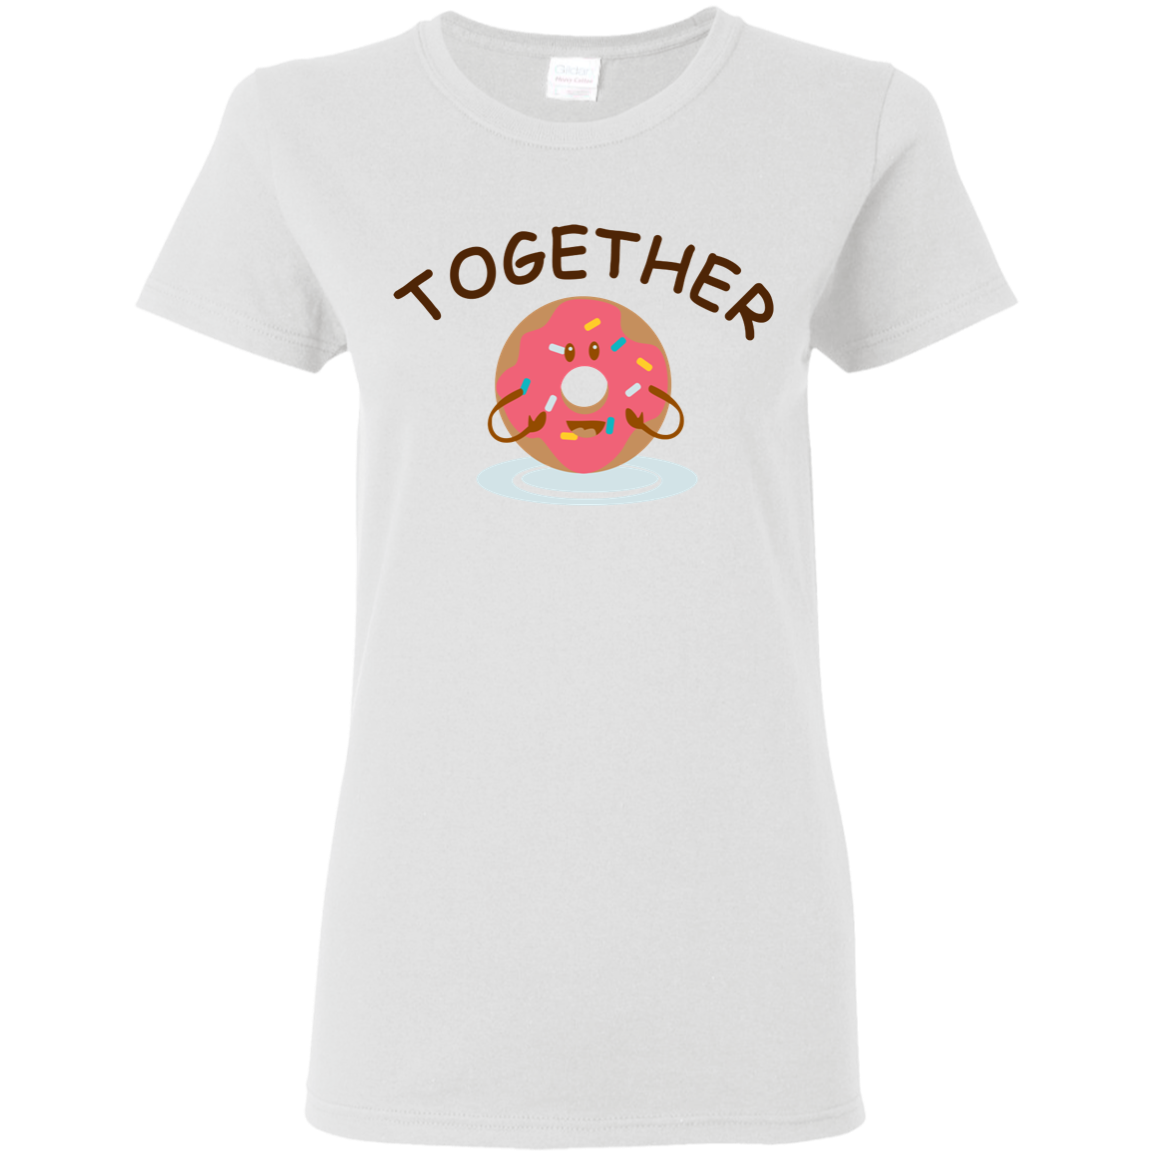 Together Donut T-shirt